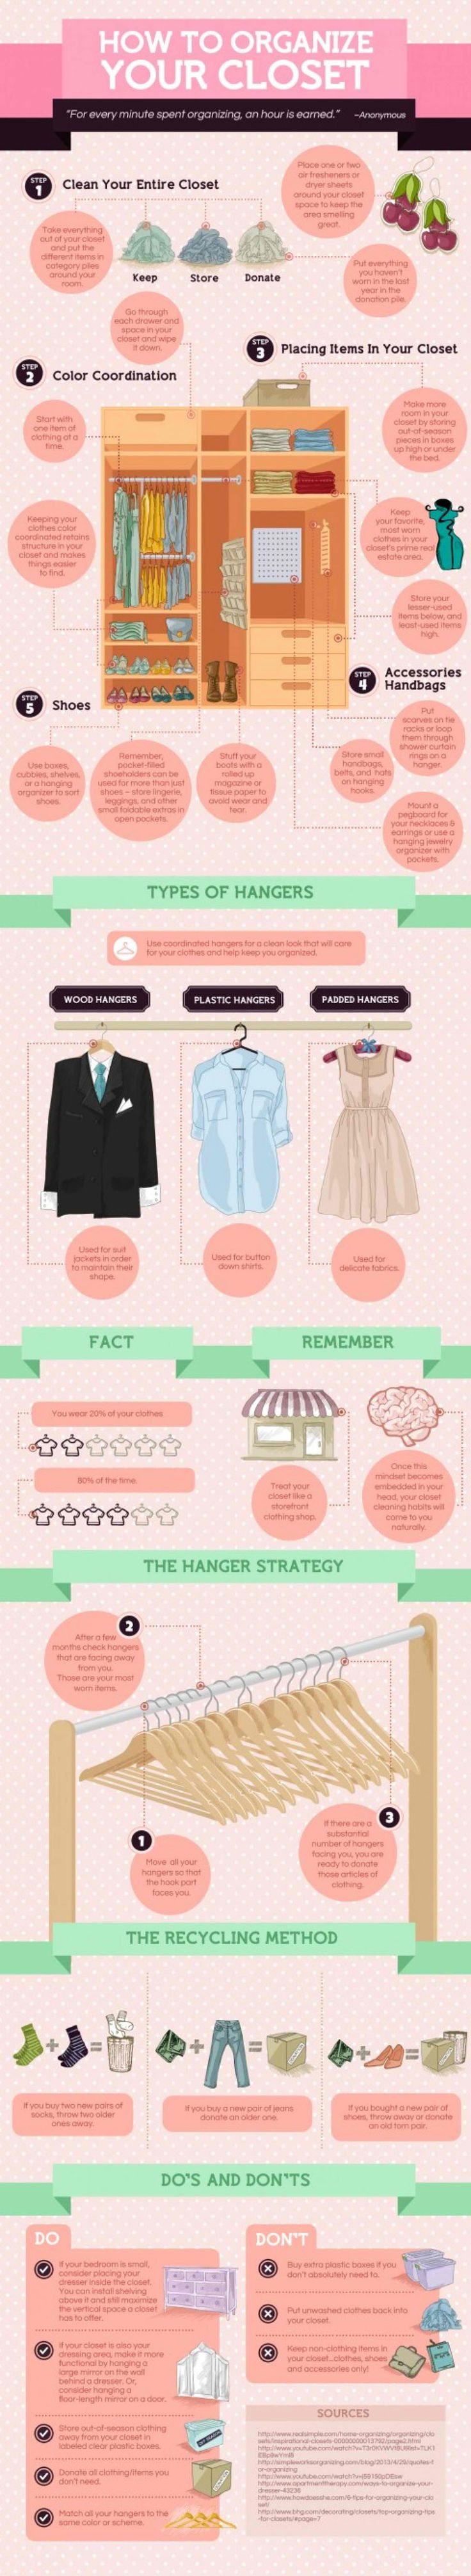 Having a clean and organized closet is something that many people struggle with maintaining for longer than a couple weeks. You could spend hours scouring the internet for the best way to reconcile the  mess in your closet for good, or you could follow the simple steps assembled in this infographic! This guide covers everything needed to achieve optimal organization in your closet such as proper color coordination and ideal placement of your most commonly used items. This infographic even…